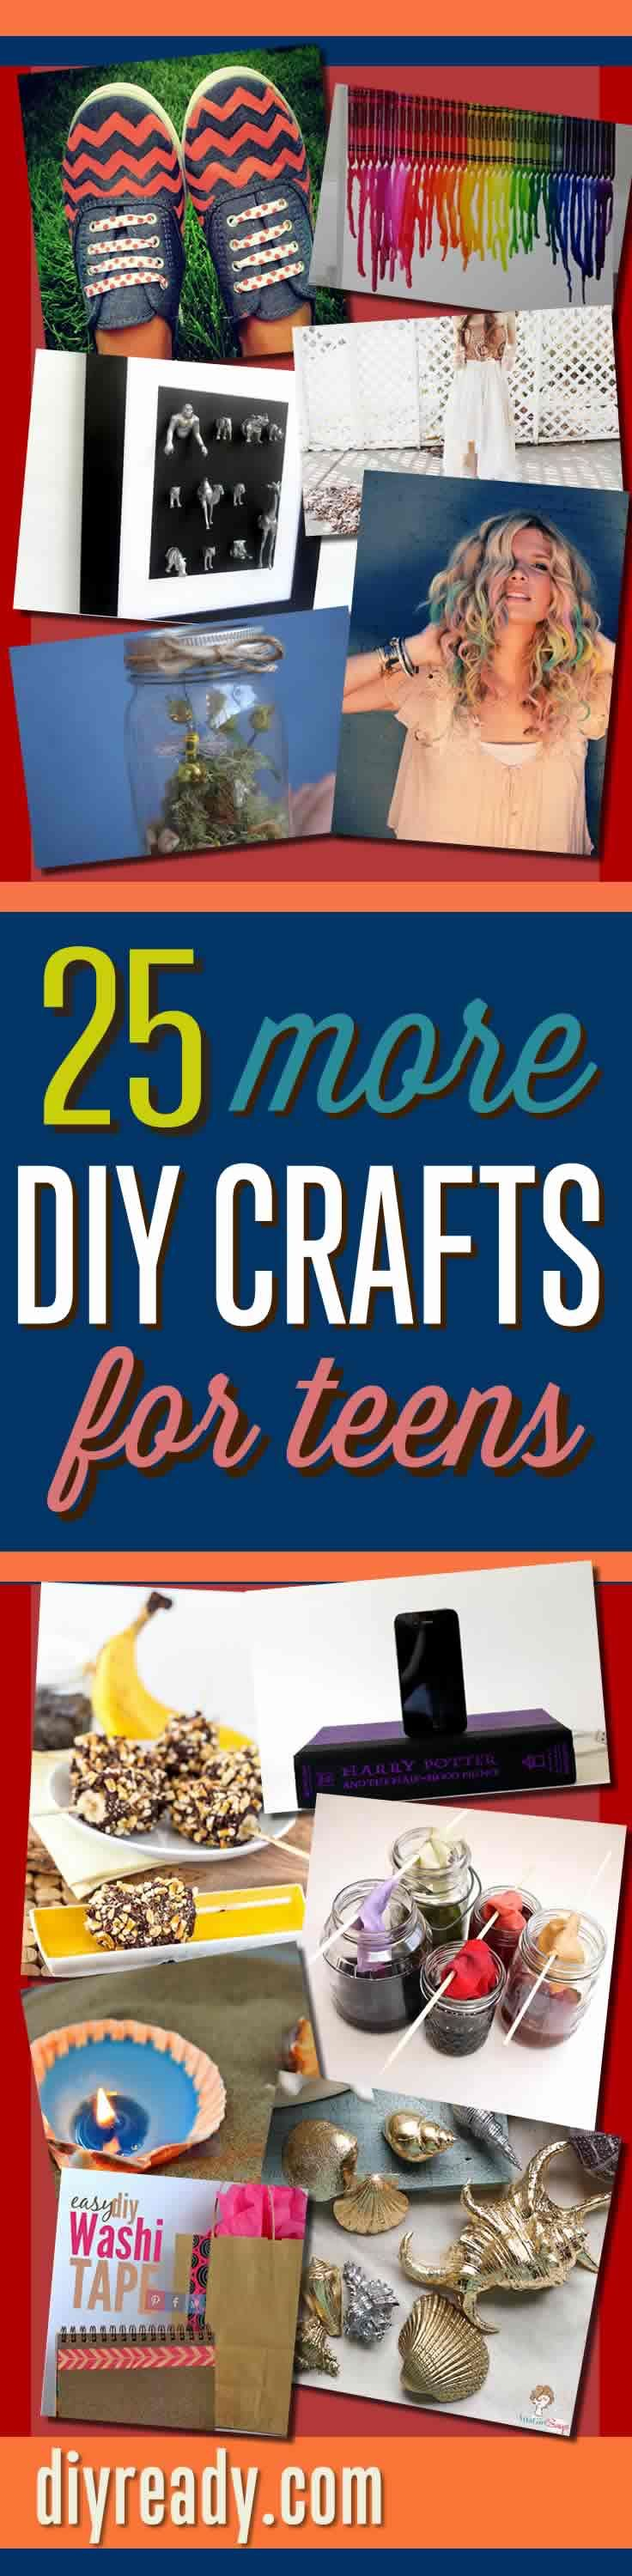 DIY Projects For Teens Crafts Girls And Boys Love With 25 Cool Craft Ideas Easy To Follow Tutorials